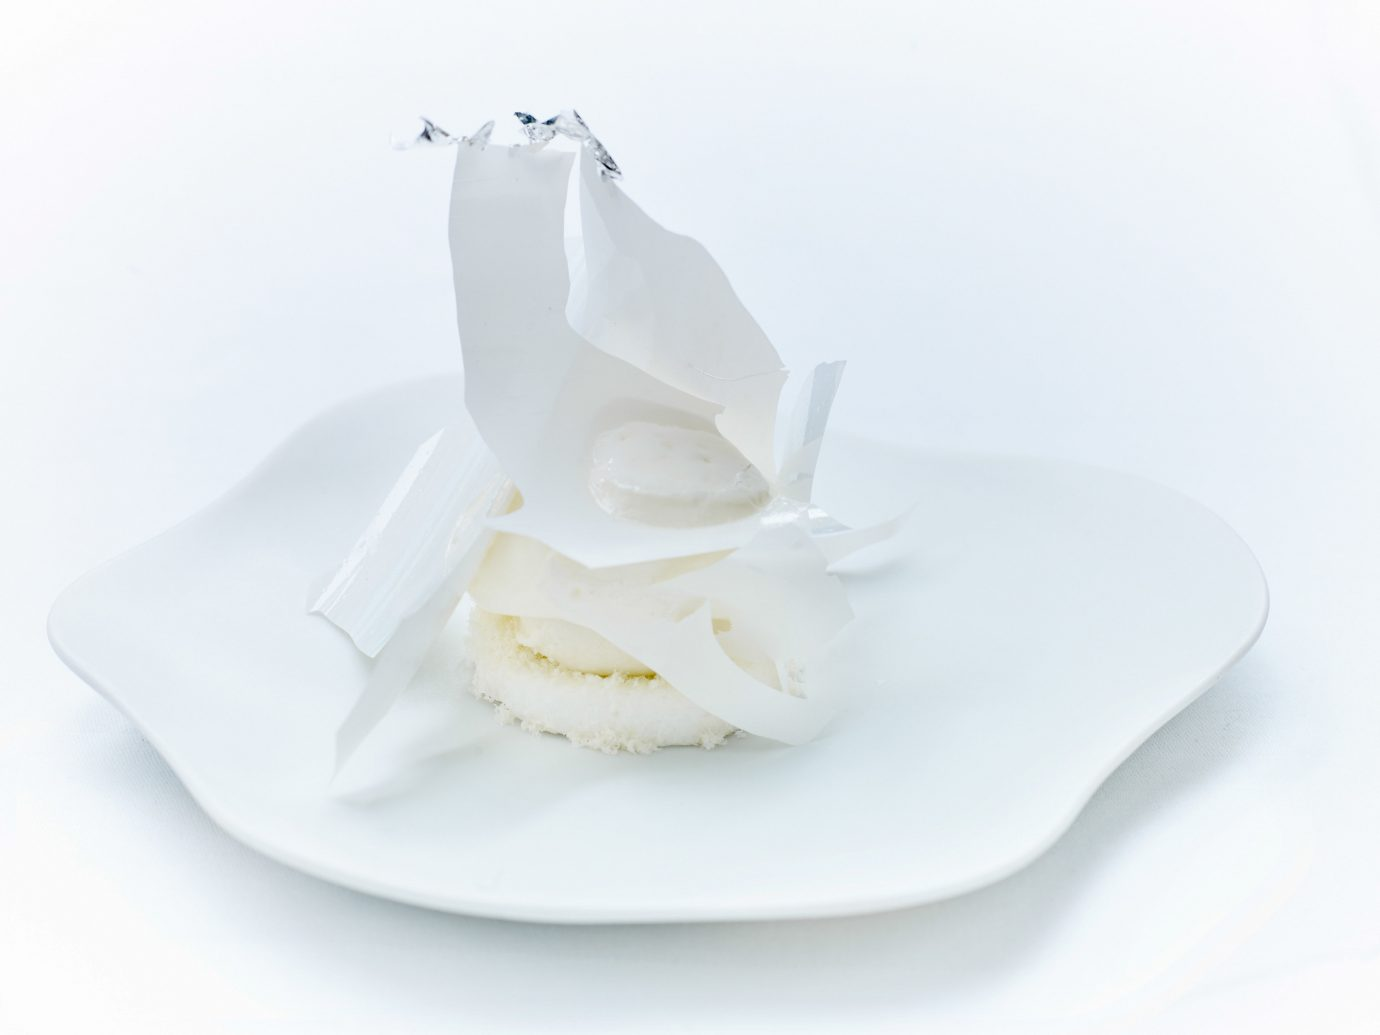 Food + Drink Romance plate food white product design whipped cream flavor dairy product dessert cream butter